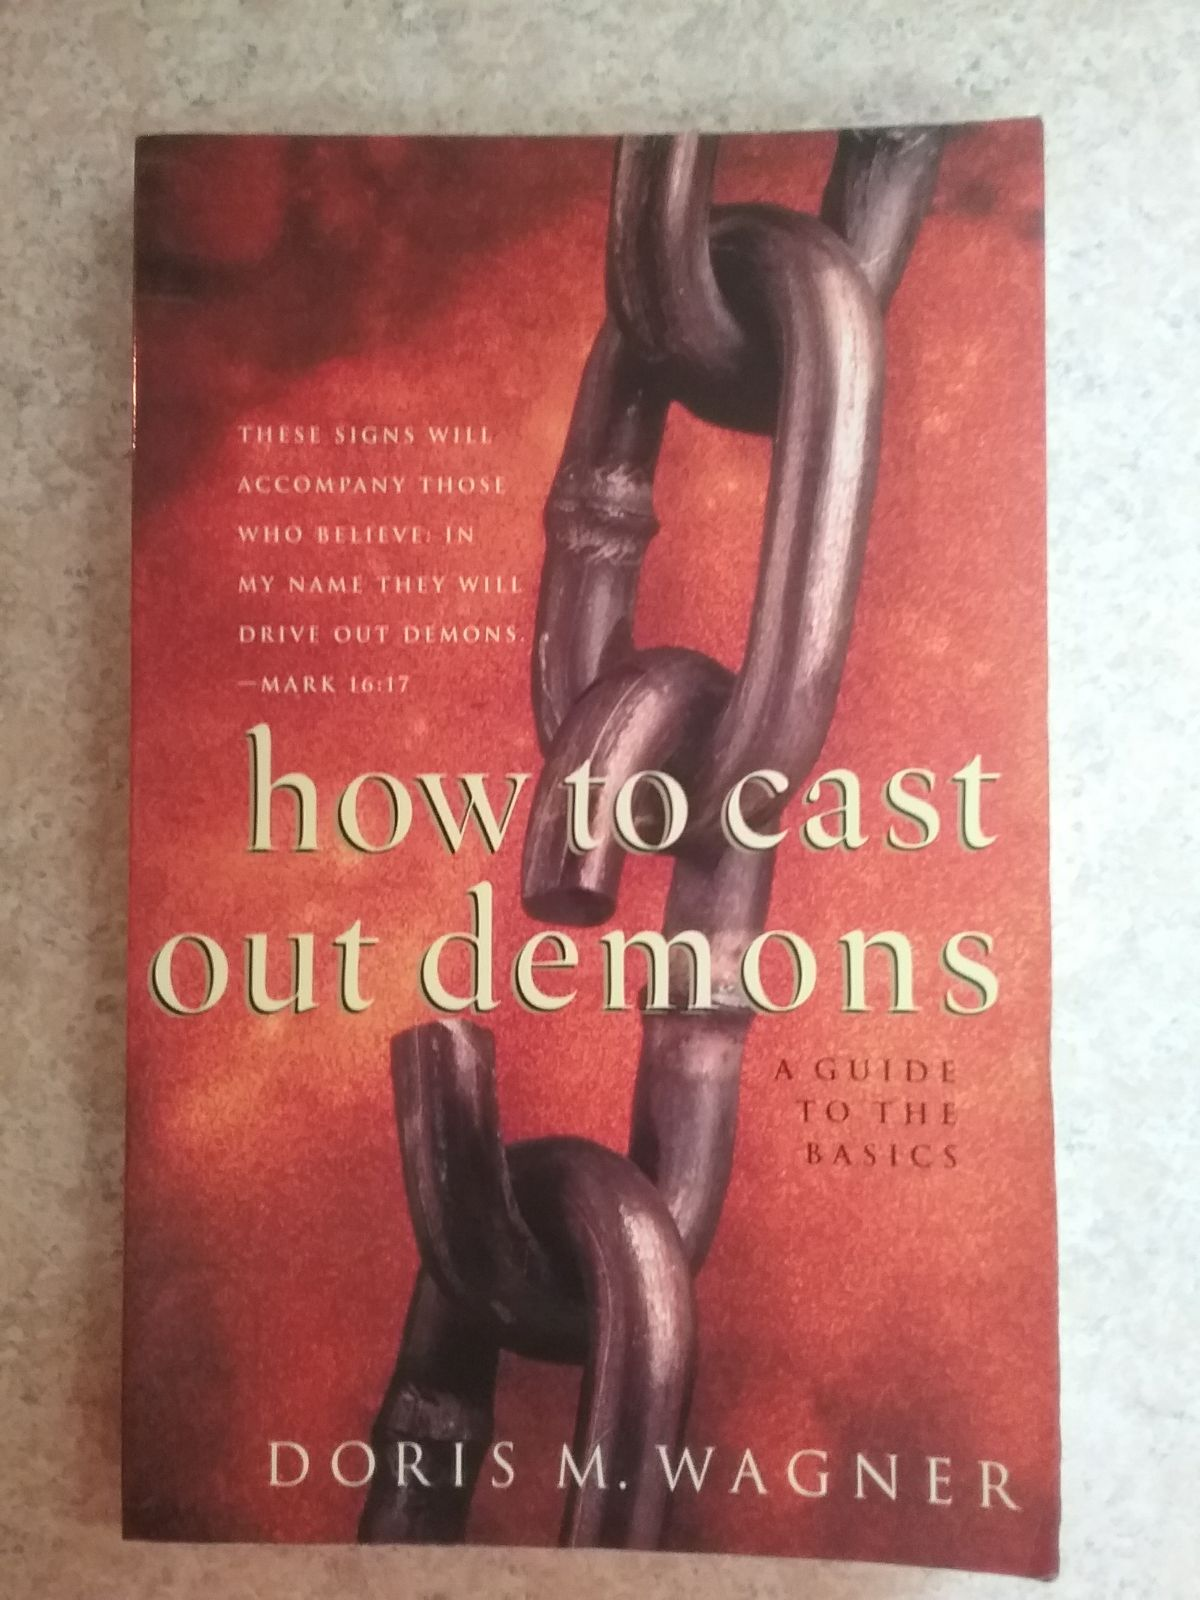 DEMONS, HOW TO CAST THEM OUT